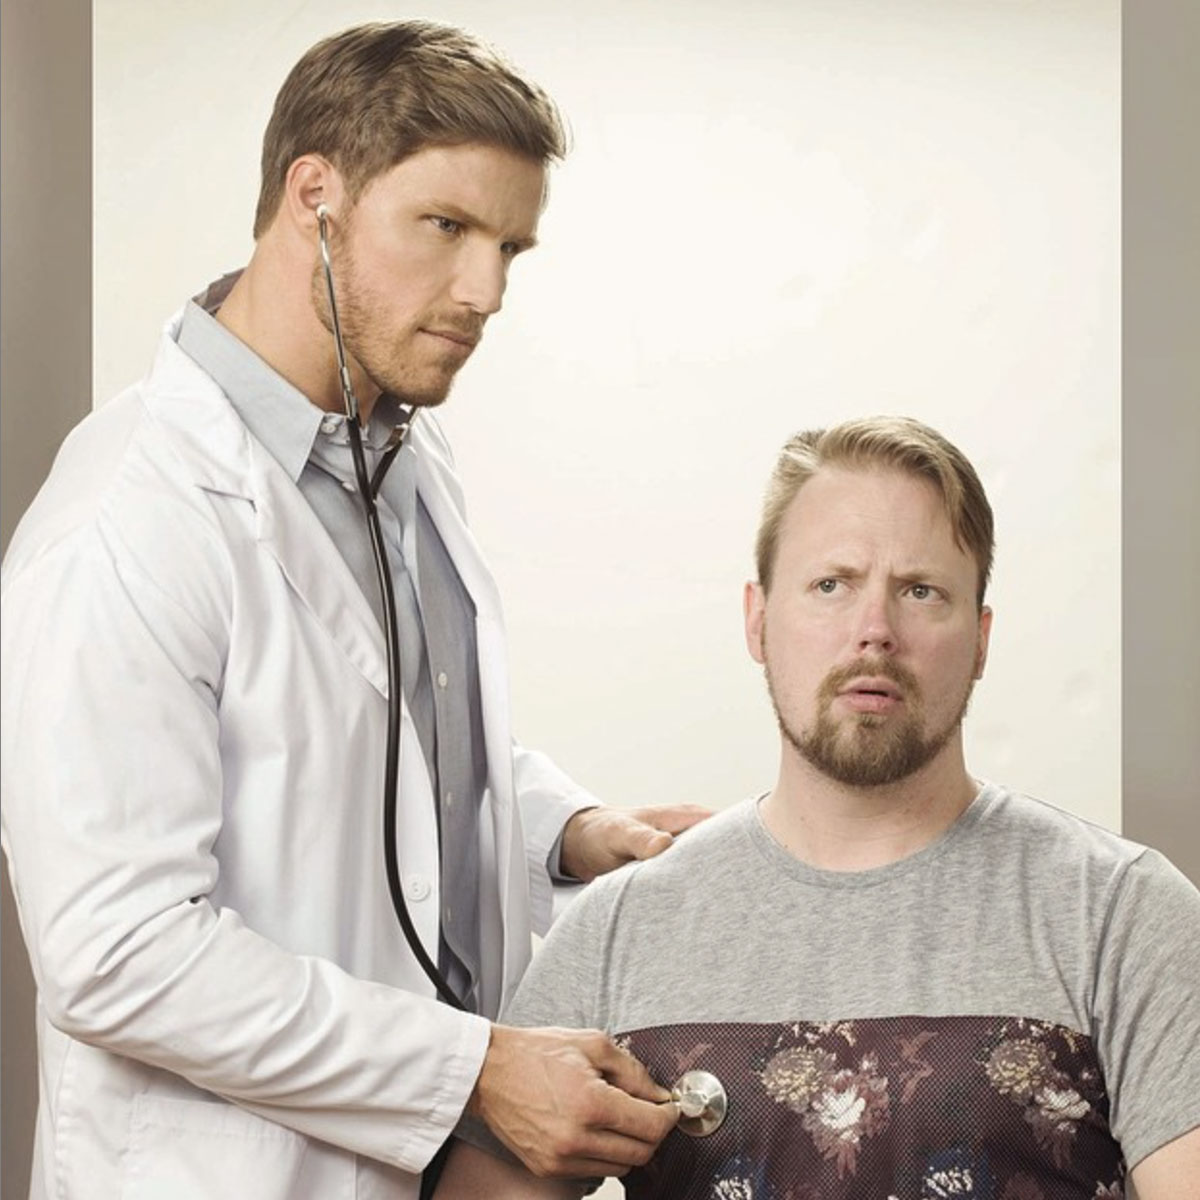 A quick check-up with doctor Bewls before his shoot